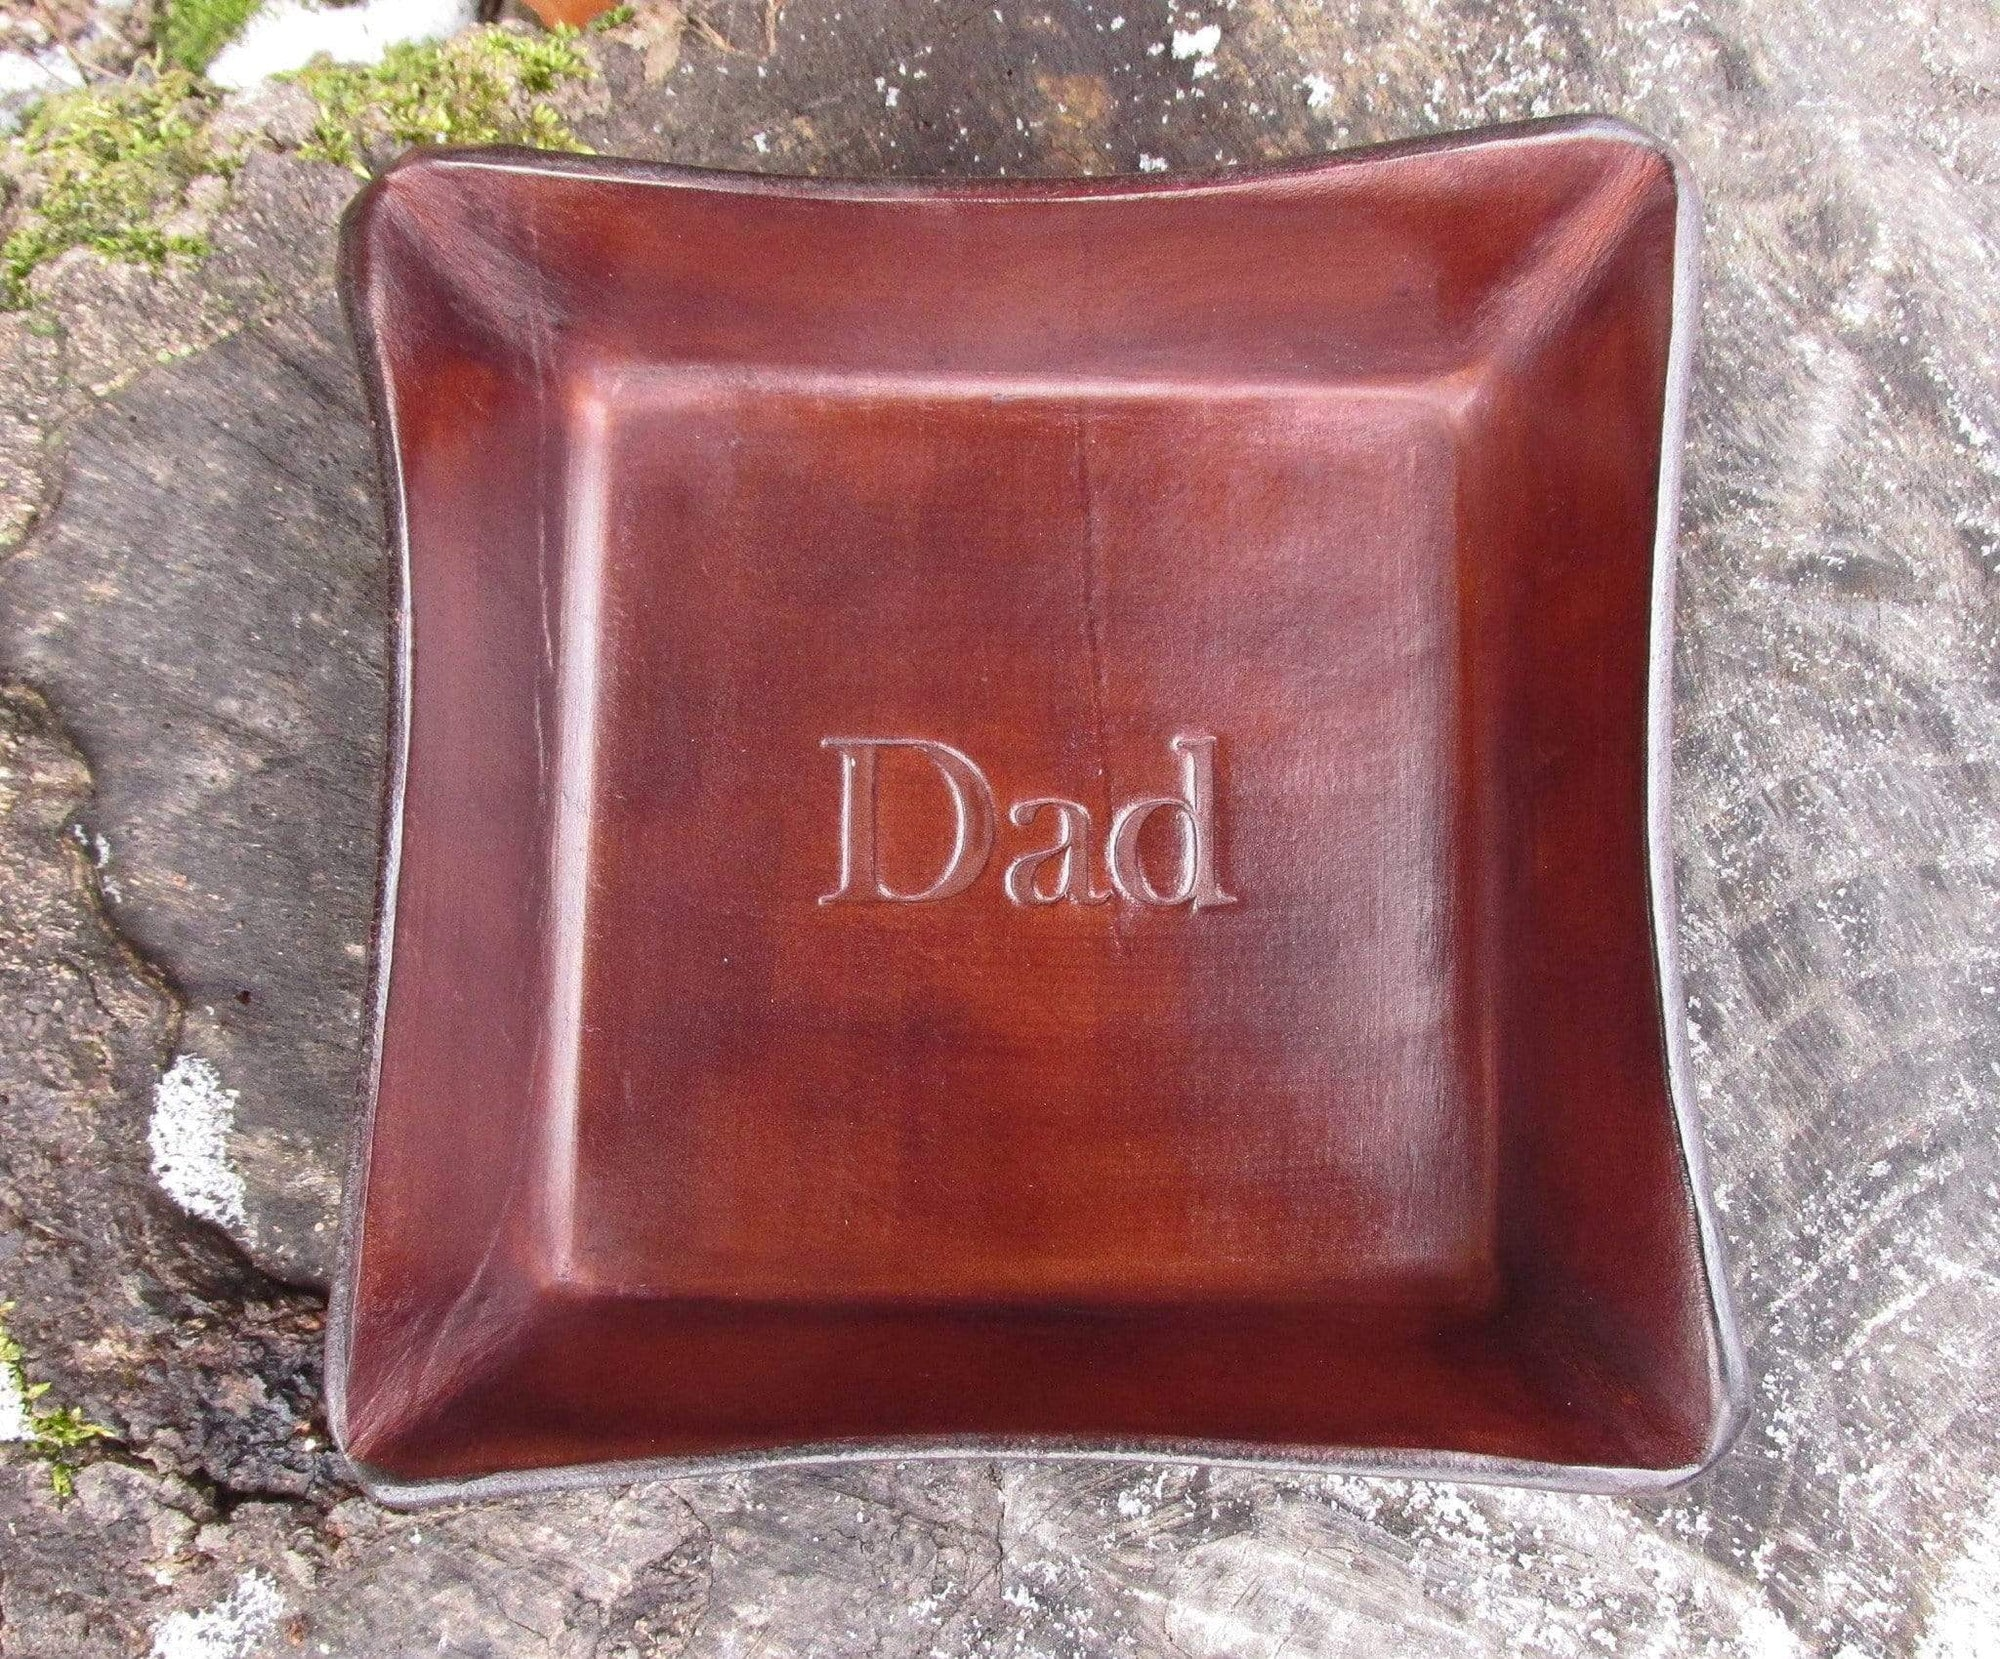 Gift for Dad Embossed Leather Valet Tray.